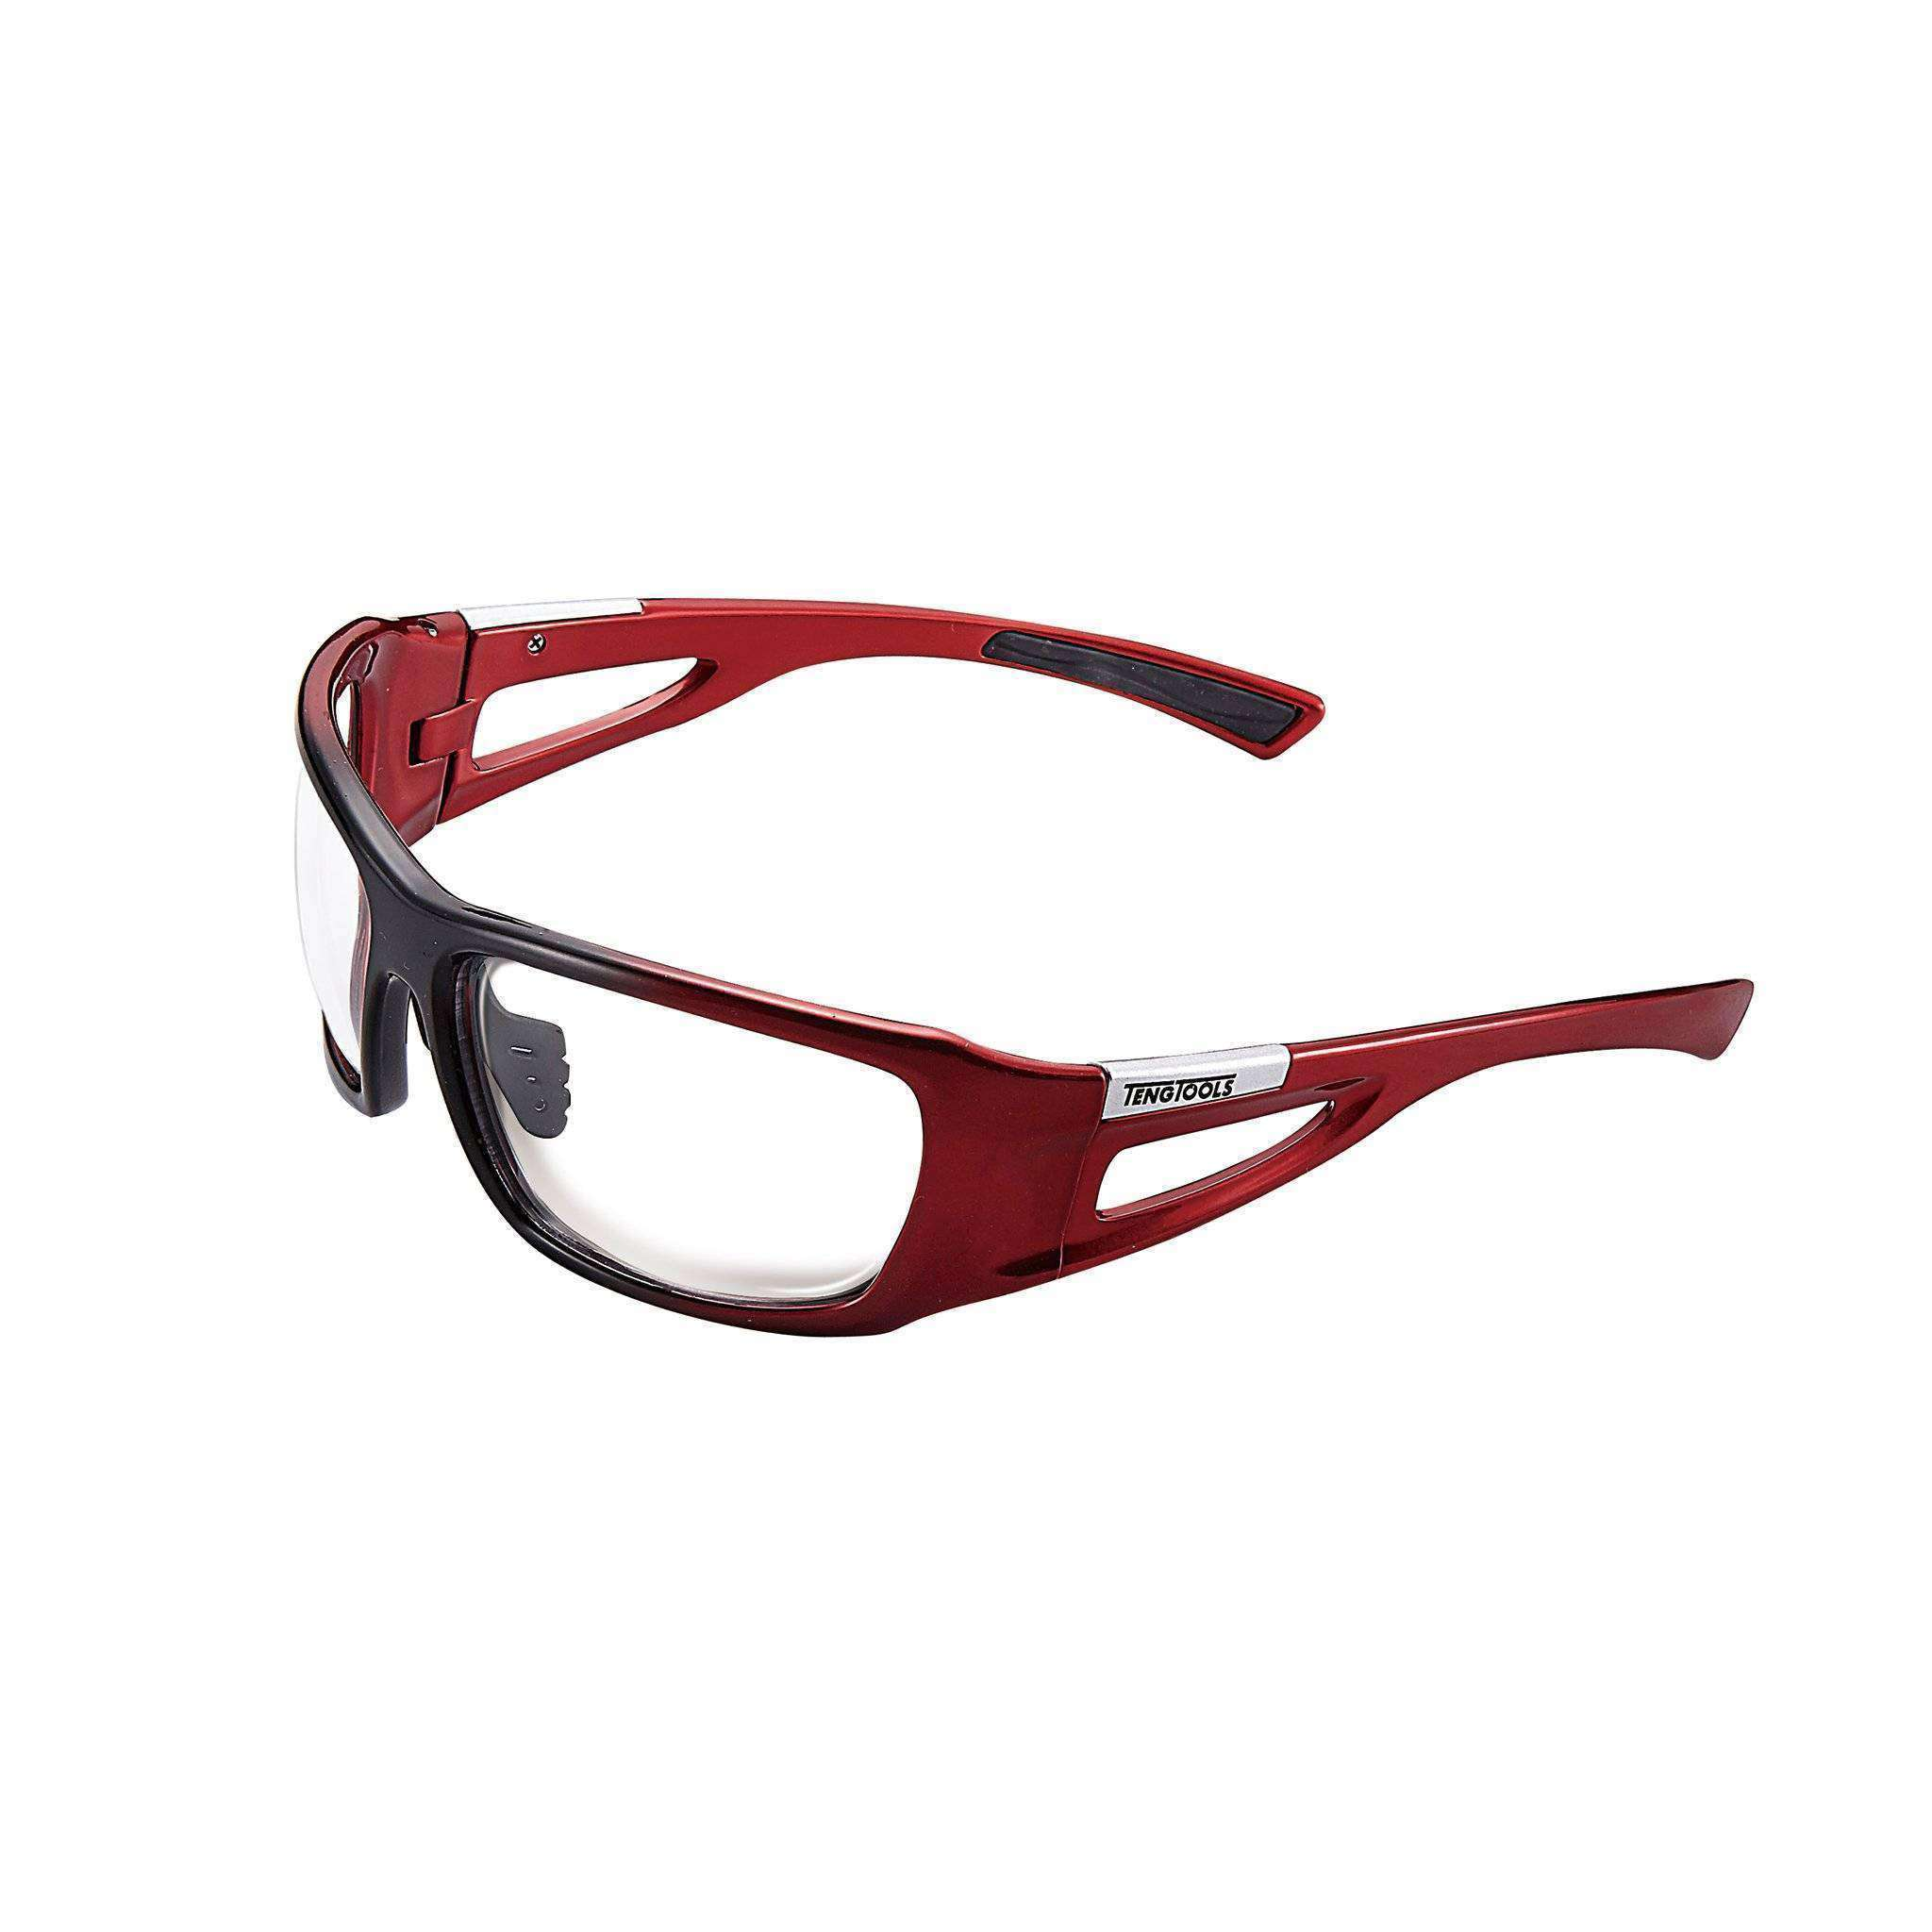 Red Safety Glasses - Clear Lenses - Teng Tools SG001 - Teng Tools USA